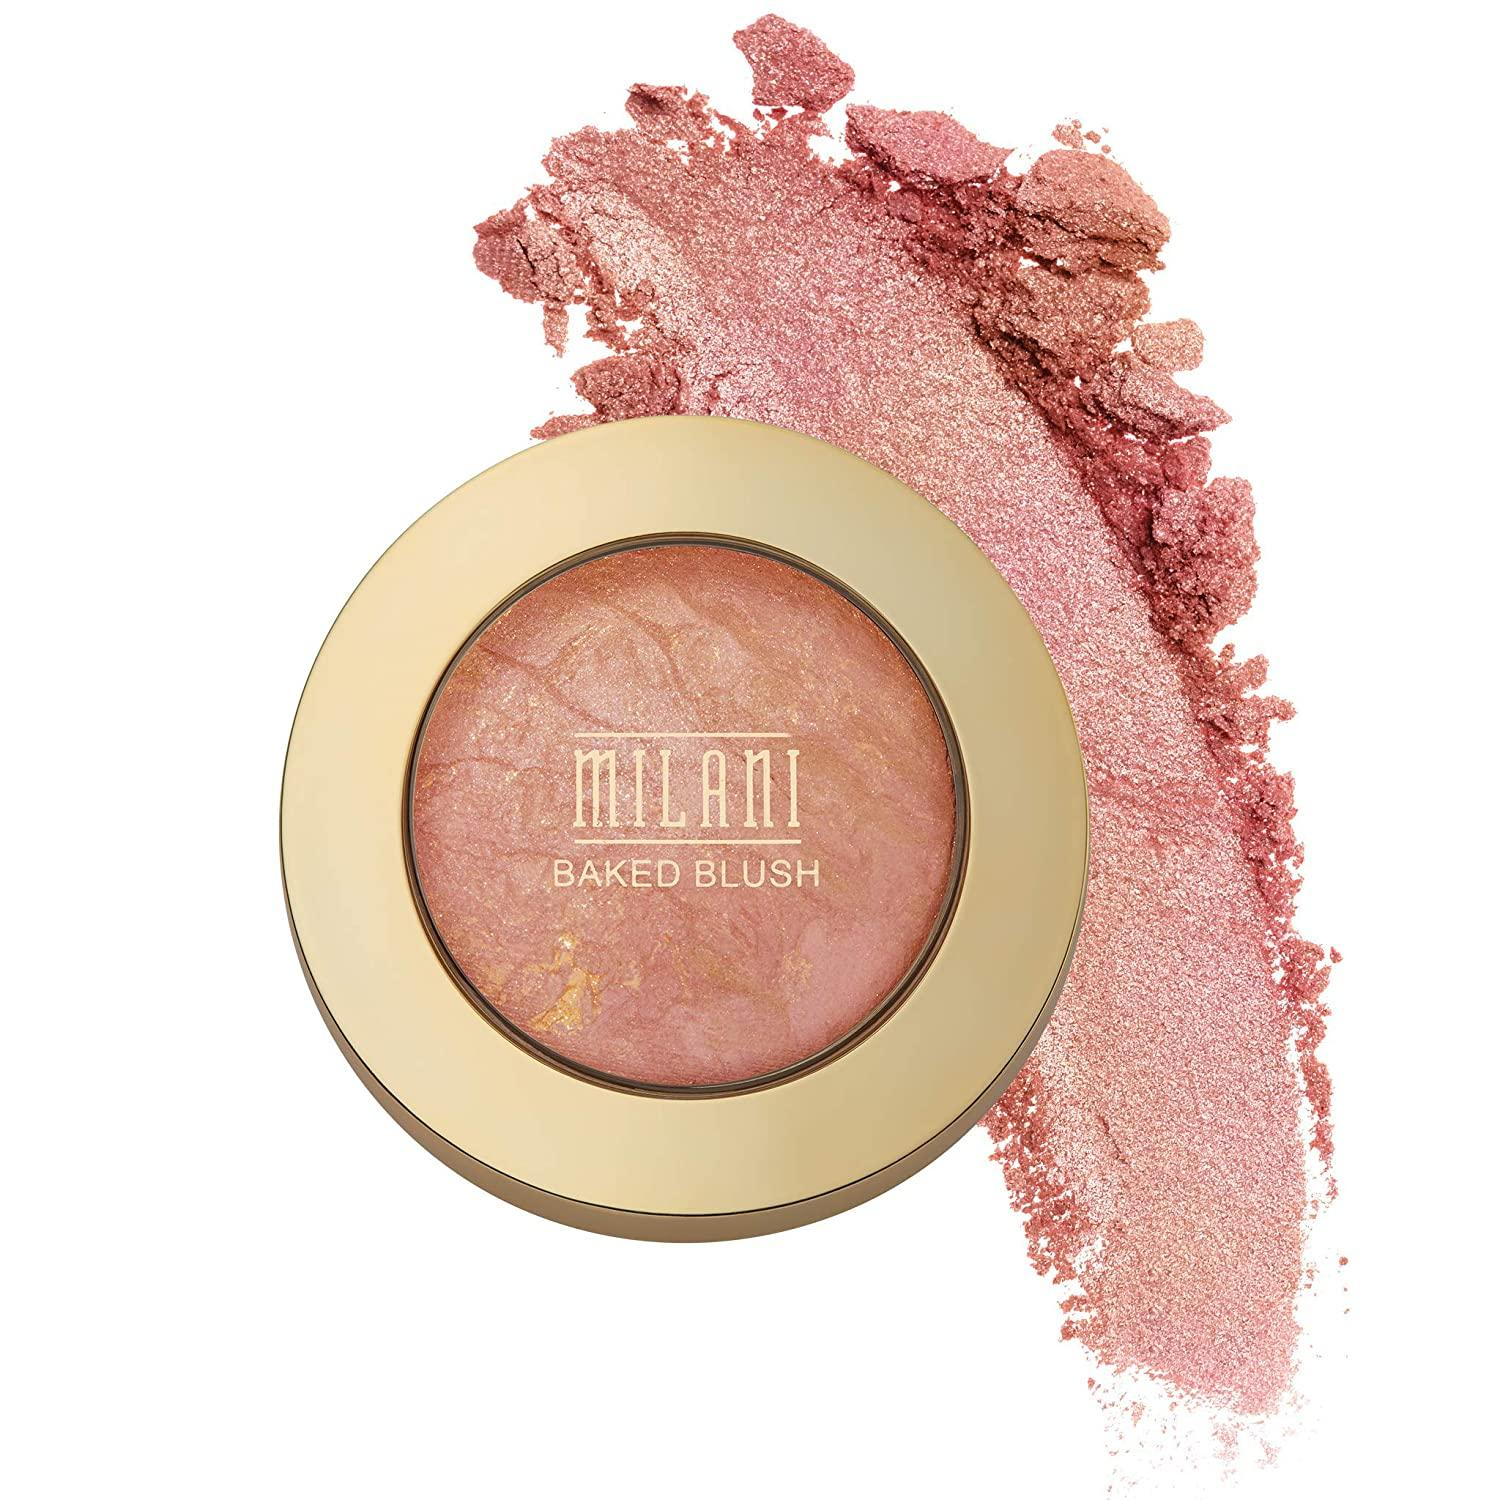 Milani Baked Blush, Berry Amore, Cruelty-Free Powder Blush, Shape, Contour & Highlight Face for a Shimmery or Matte Finish, 0.12 Ounce